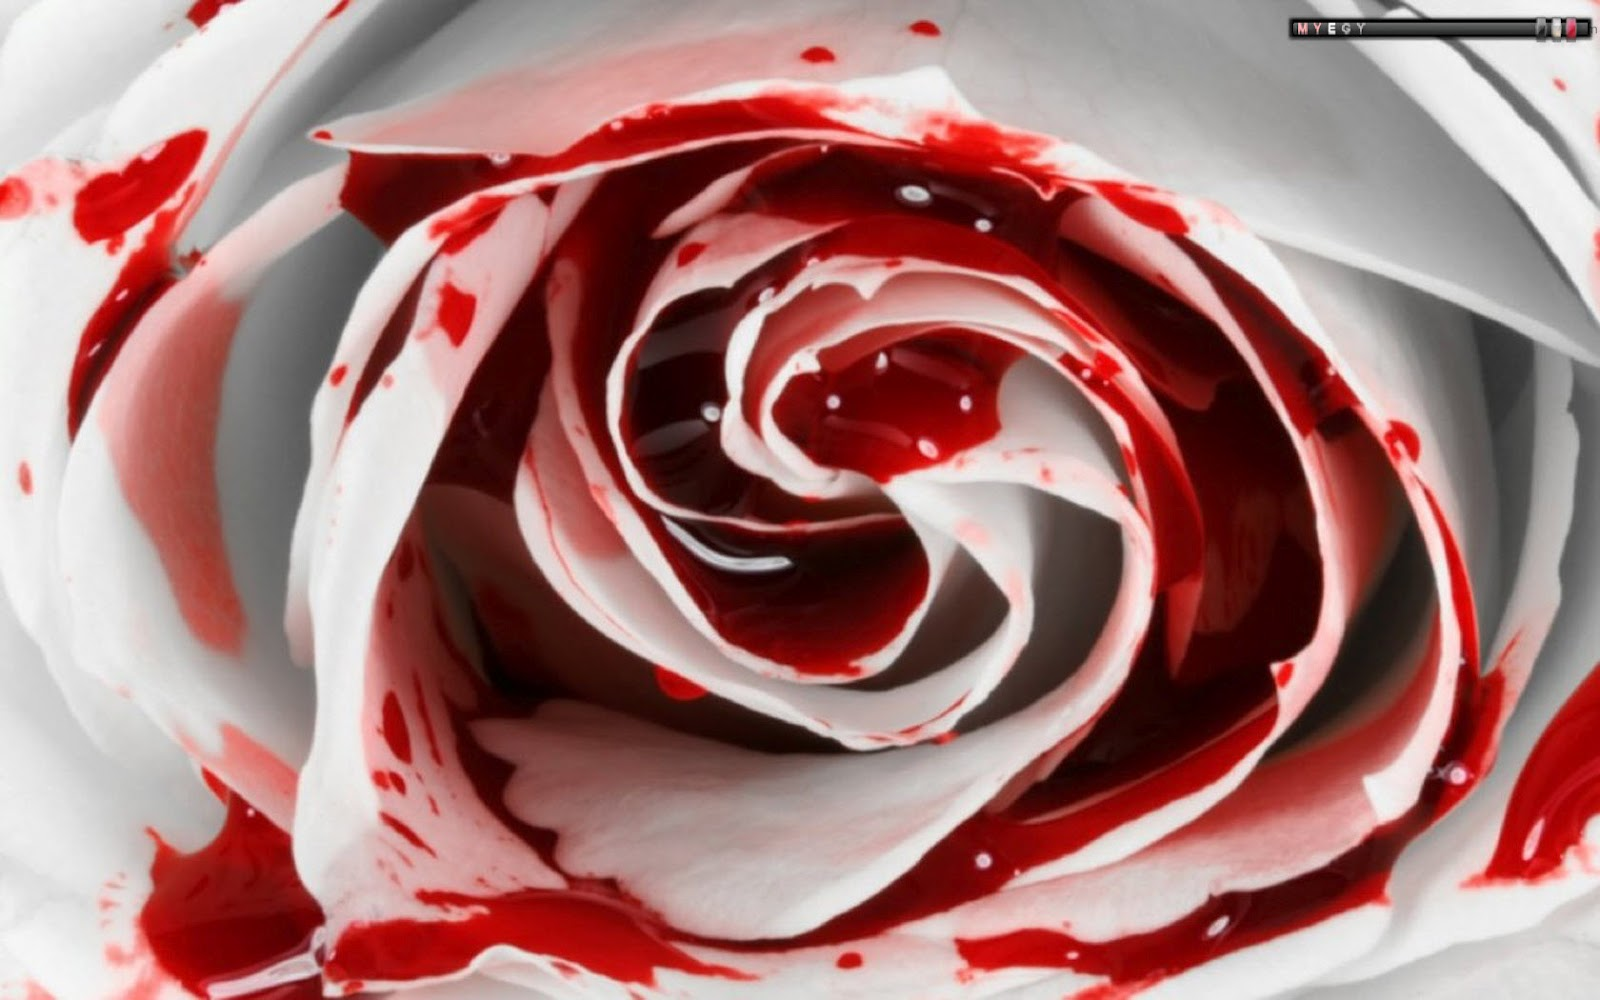 bleeding black rose wallpaper